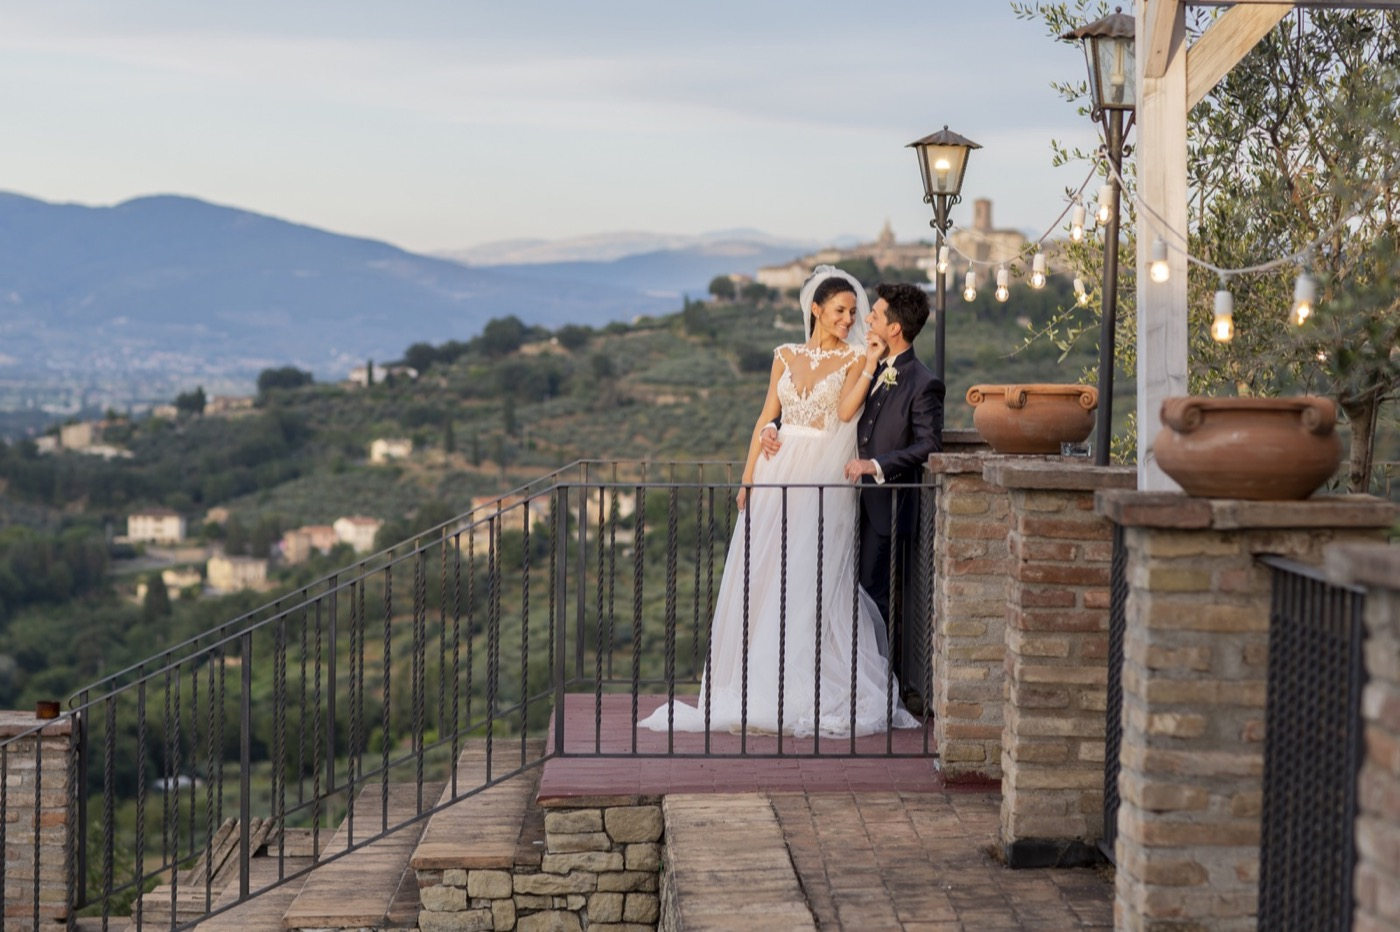 Claudio-Coppola-wedding-photographer-castello-rosciano-torgiano-54